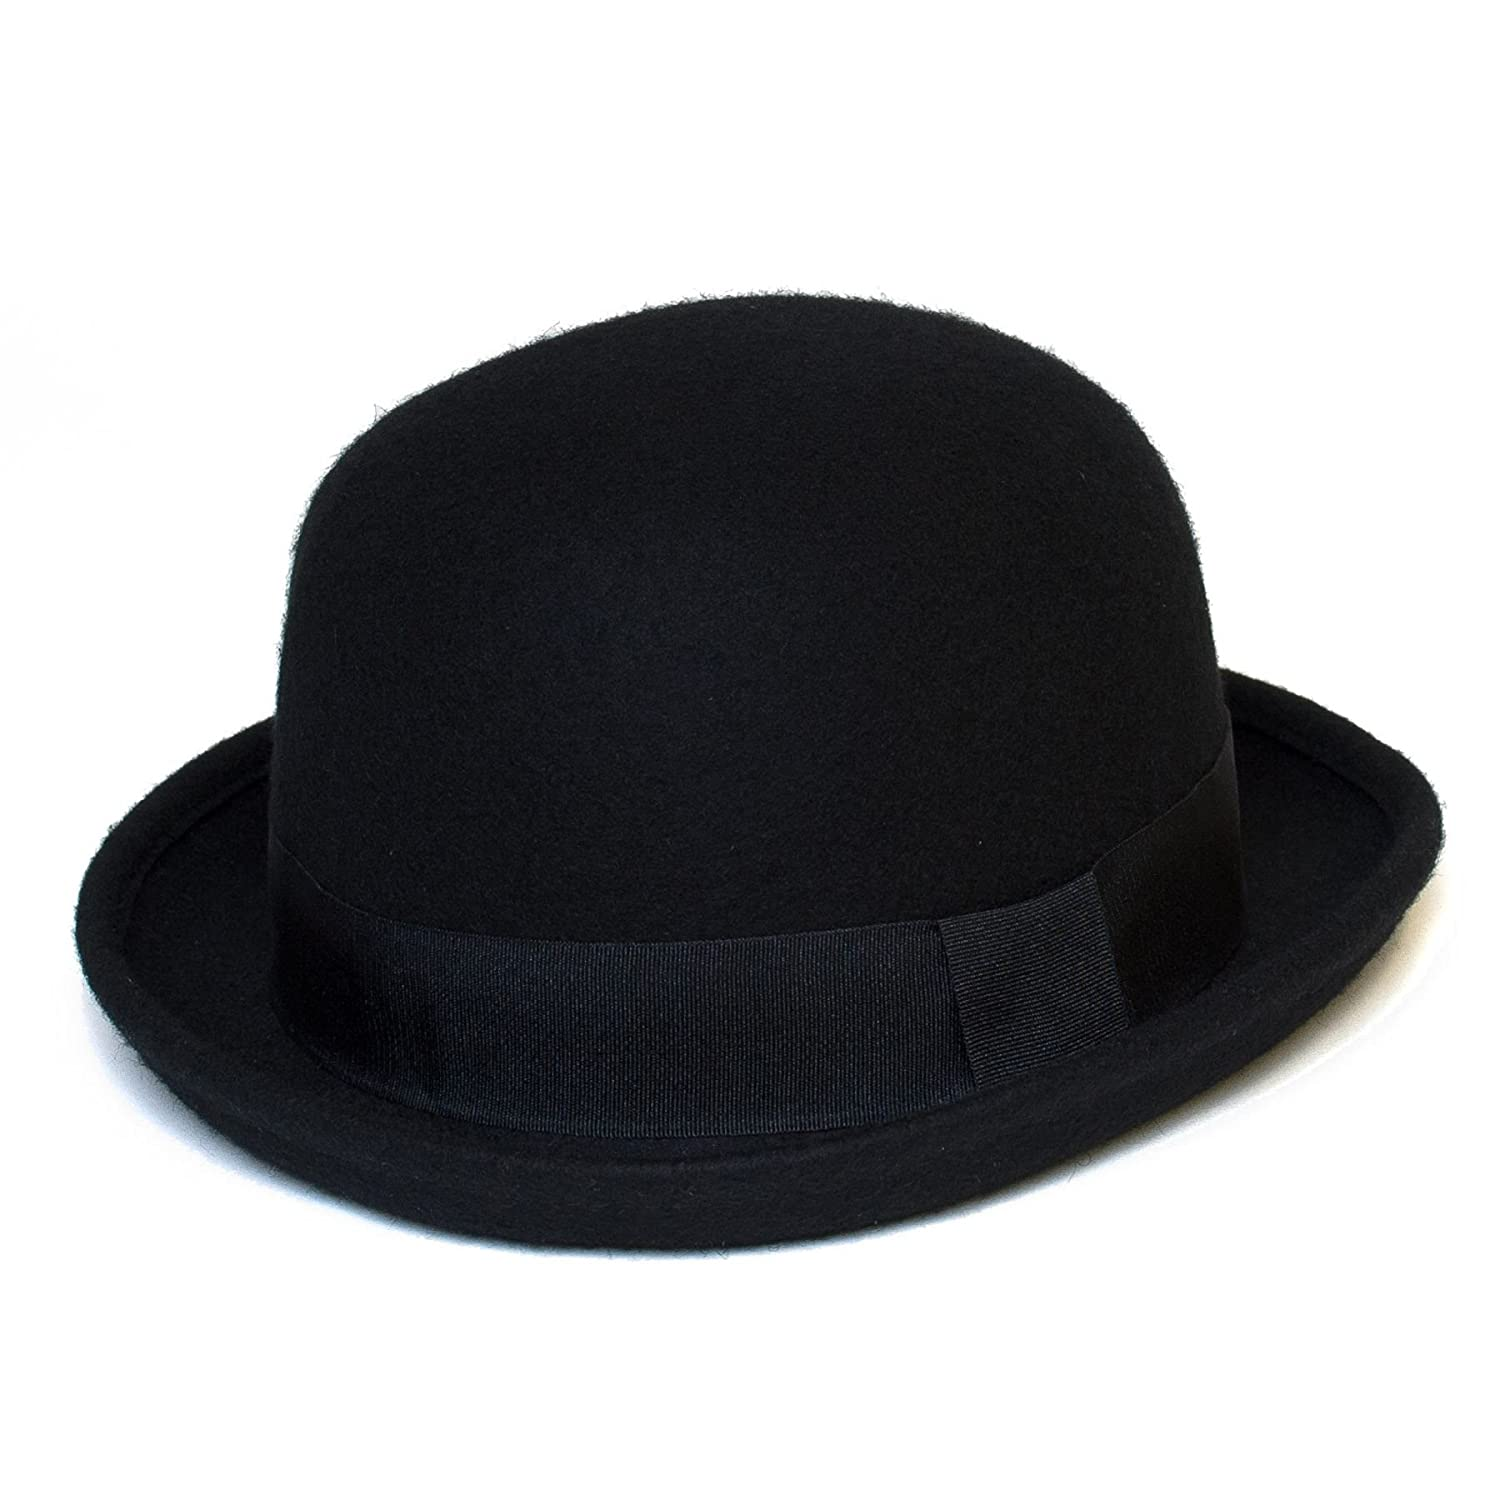 100% Wool Soft Version of Classic American Style Derby Hat Made from 100% Wool Felt, with Grosgrain Ribbon Band - Ladies Womens Mens Unisex (Black) Hat To Socks